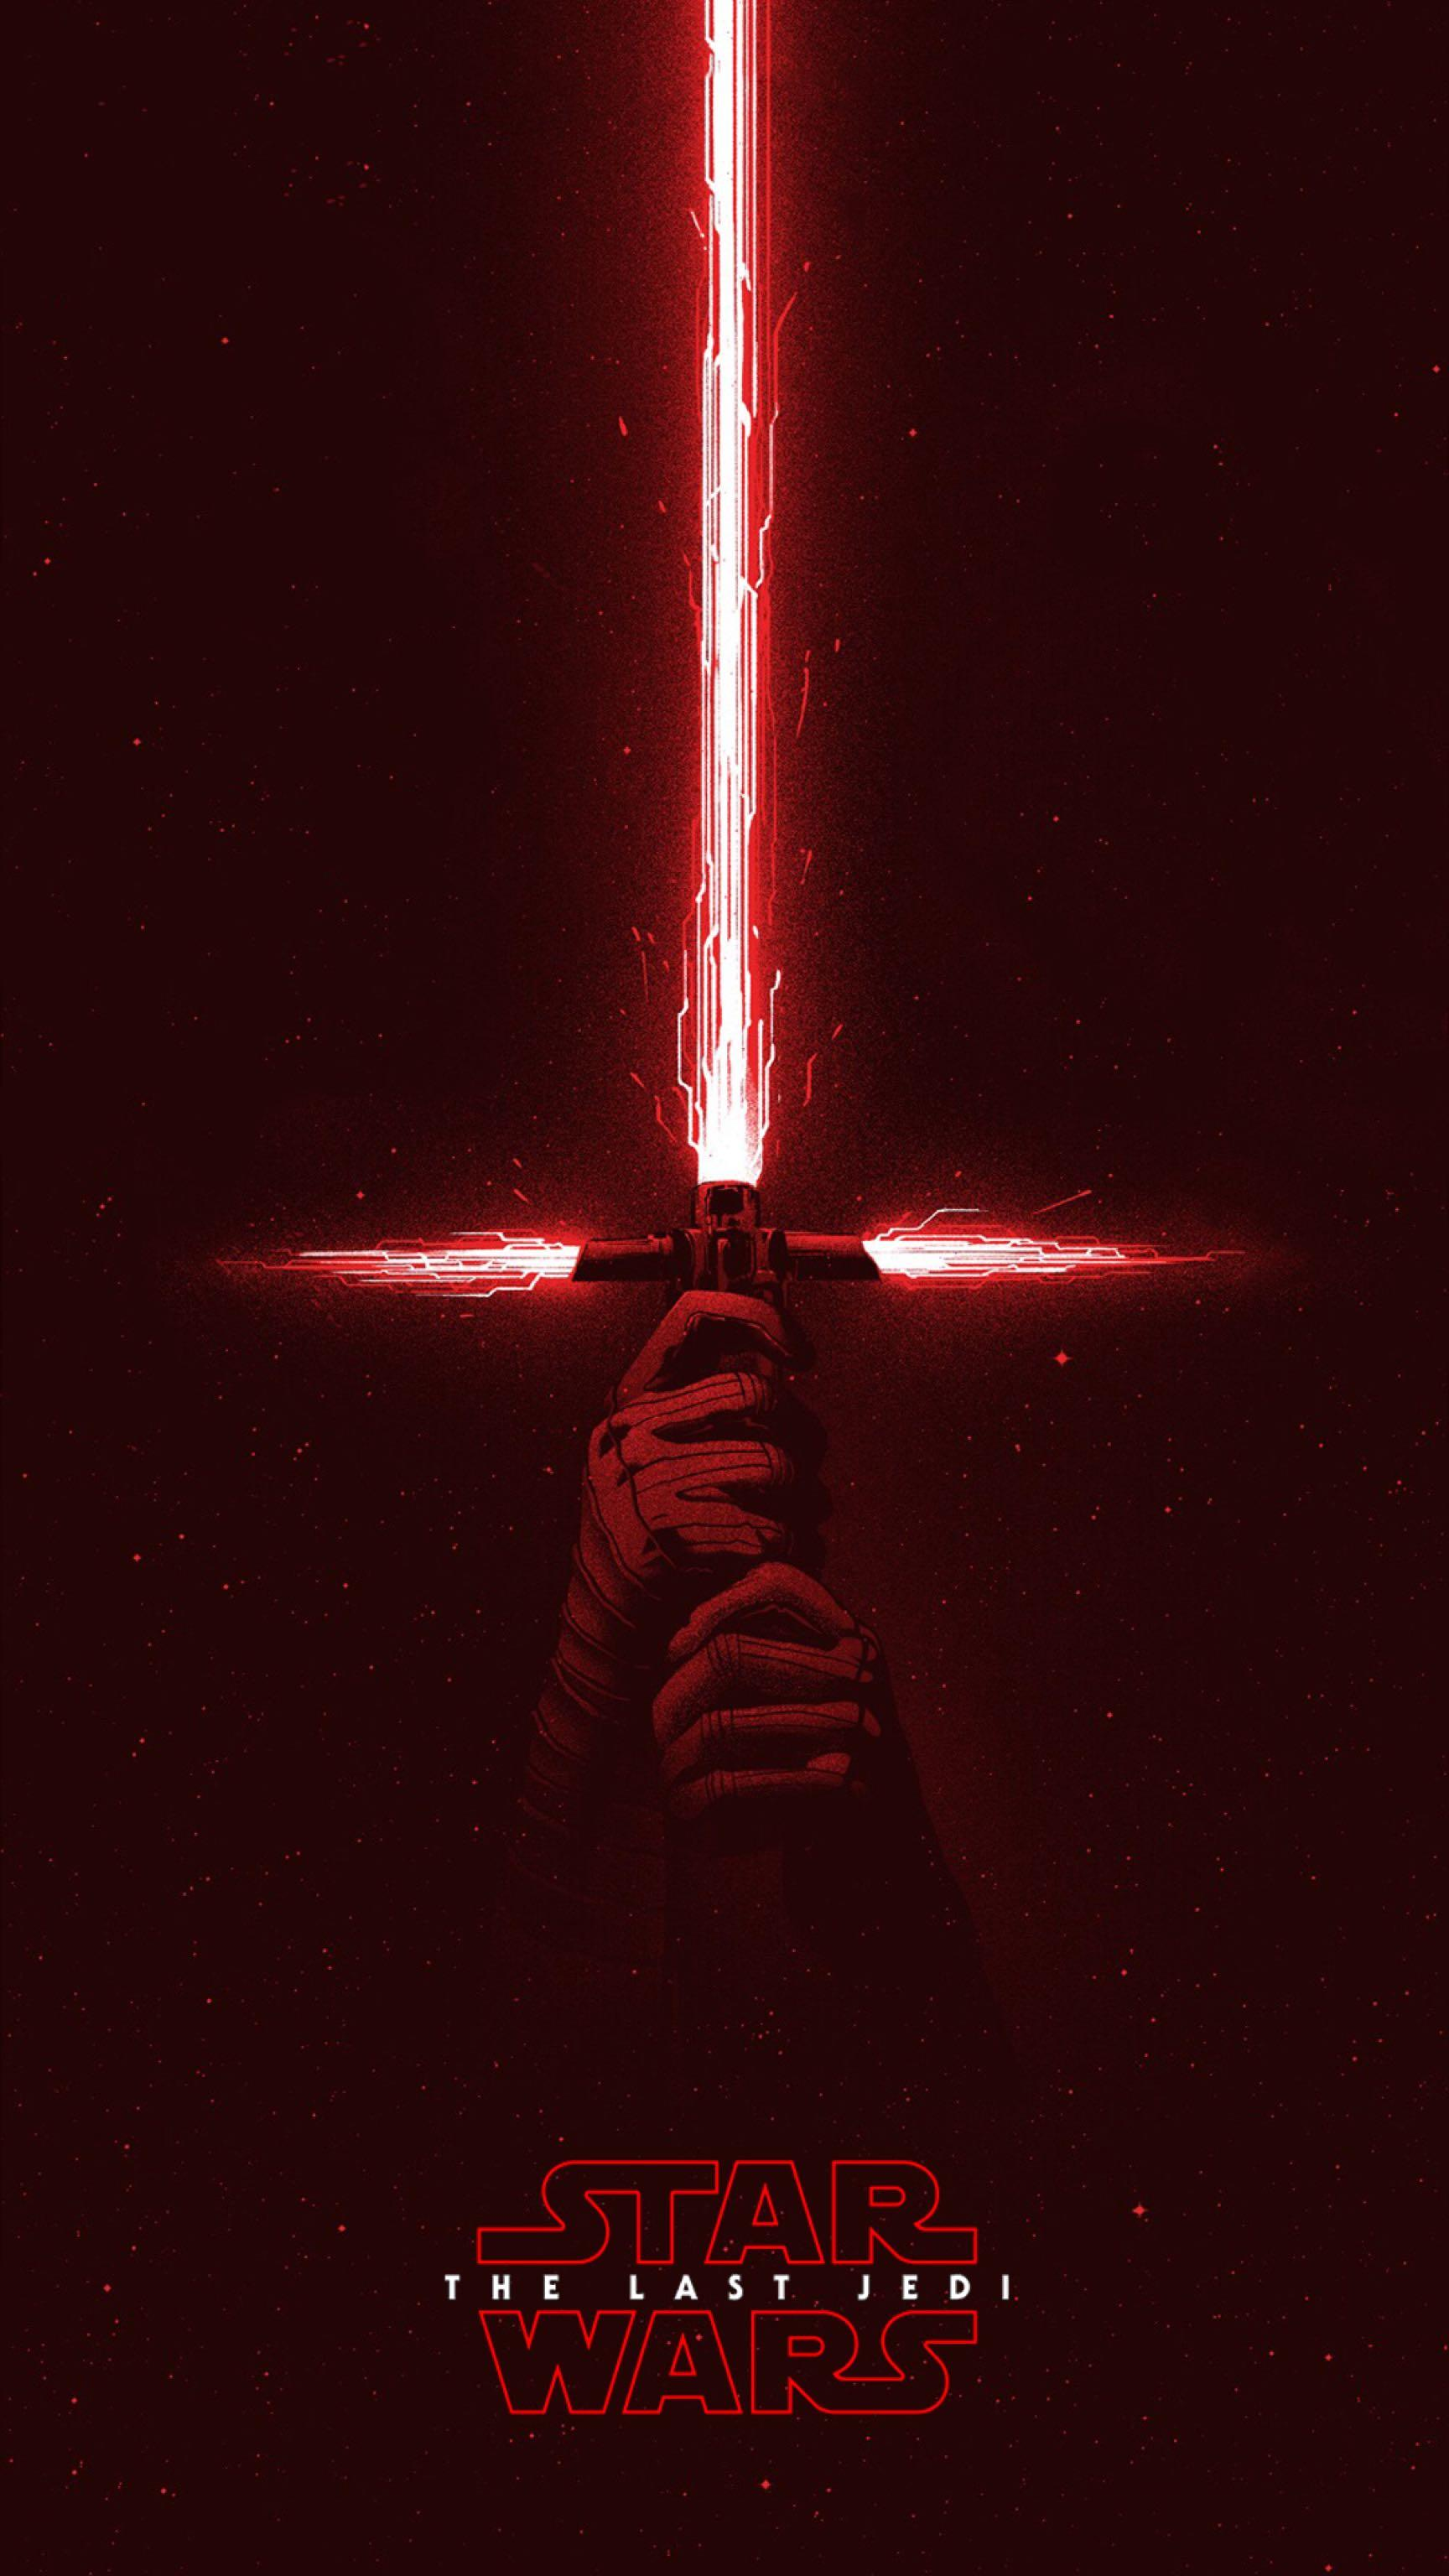 The Last Jedi Kylo Ren...heaven help us if he's the last Jedi